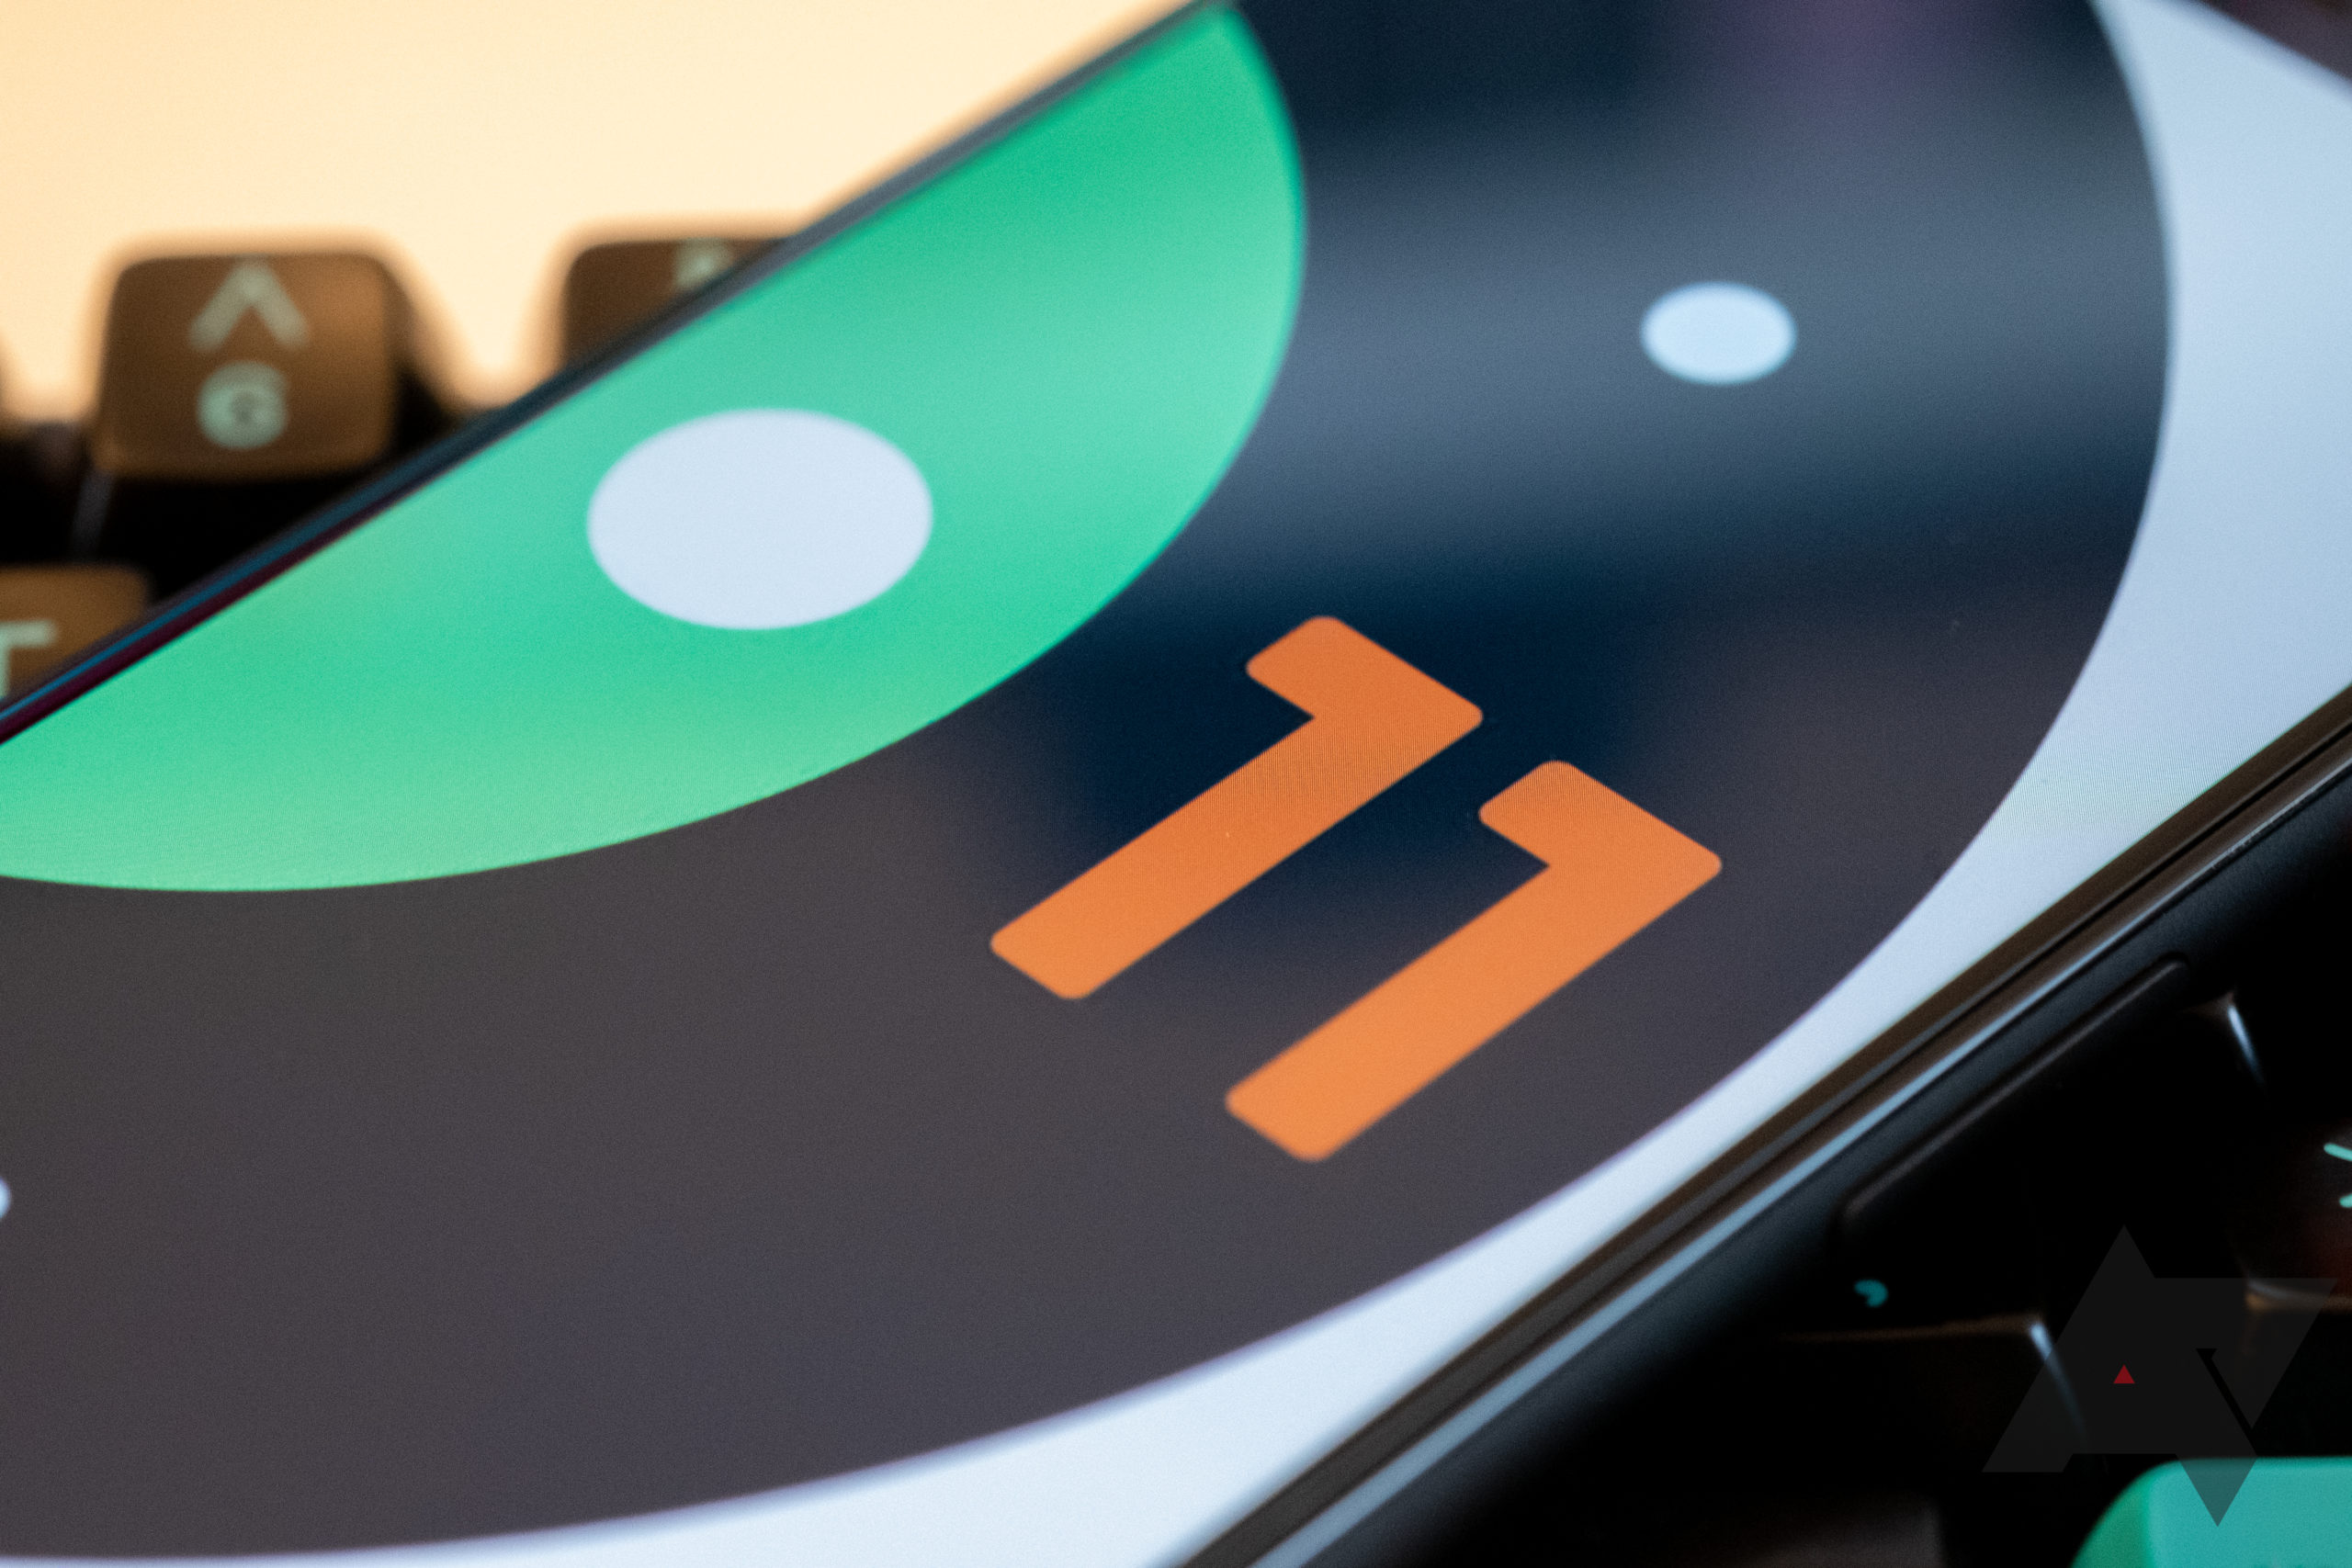 Google Accidentally Pushes Android 11 Beta To Some Pixels Despite Delayed Announcement